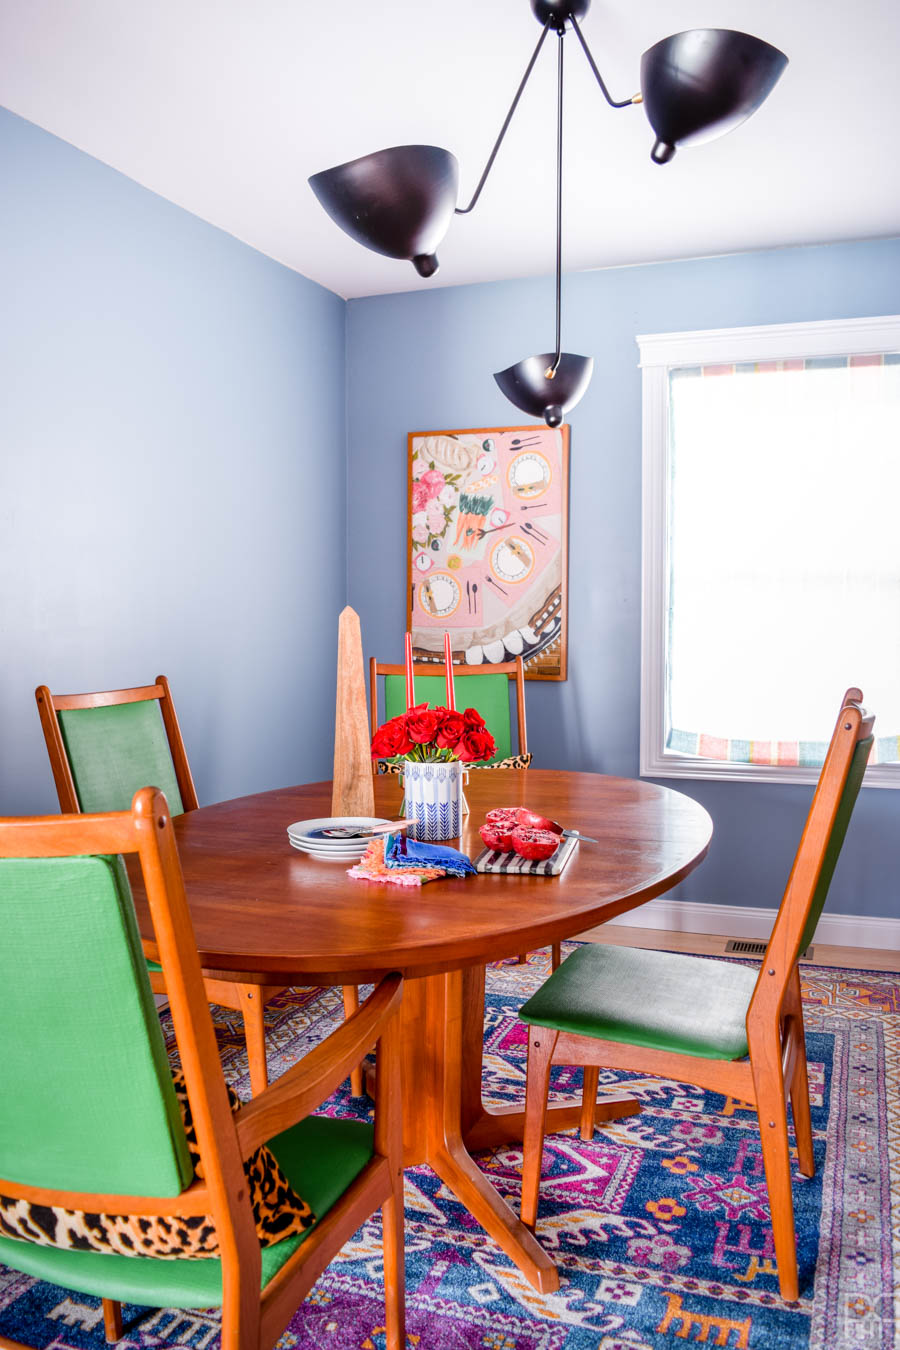 A fresh coat of paint, some cute and colourful art, well placed accessories, and of course - kick-ass furniture. That's how this ORC came together. My MCM dining room table and sideboard never looked so good!